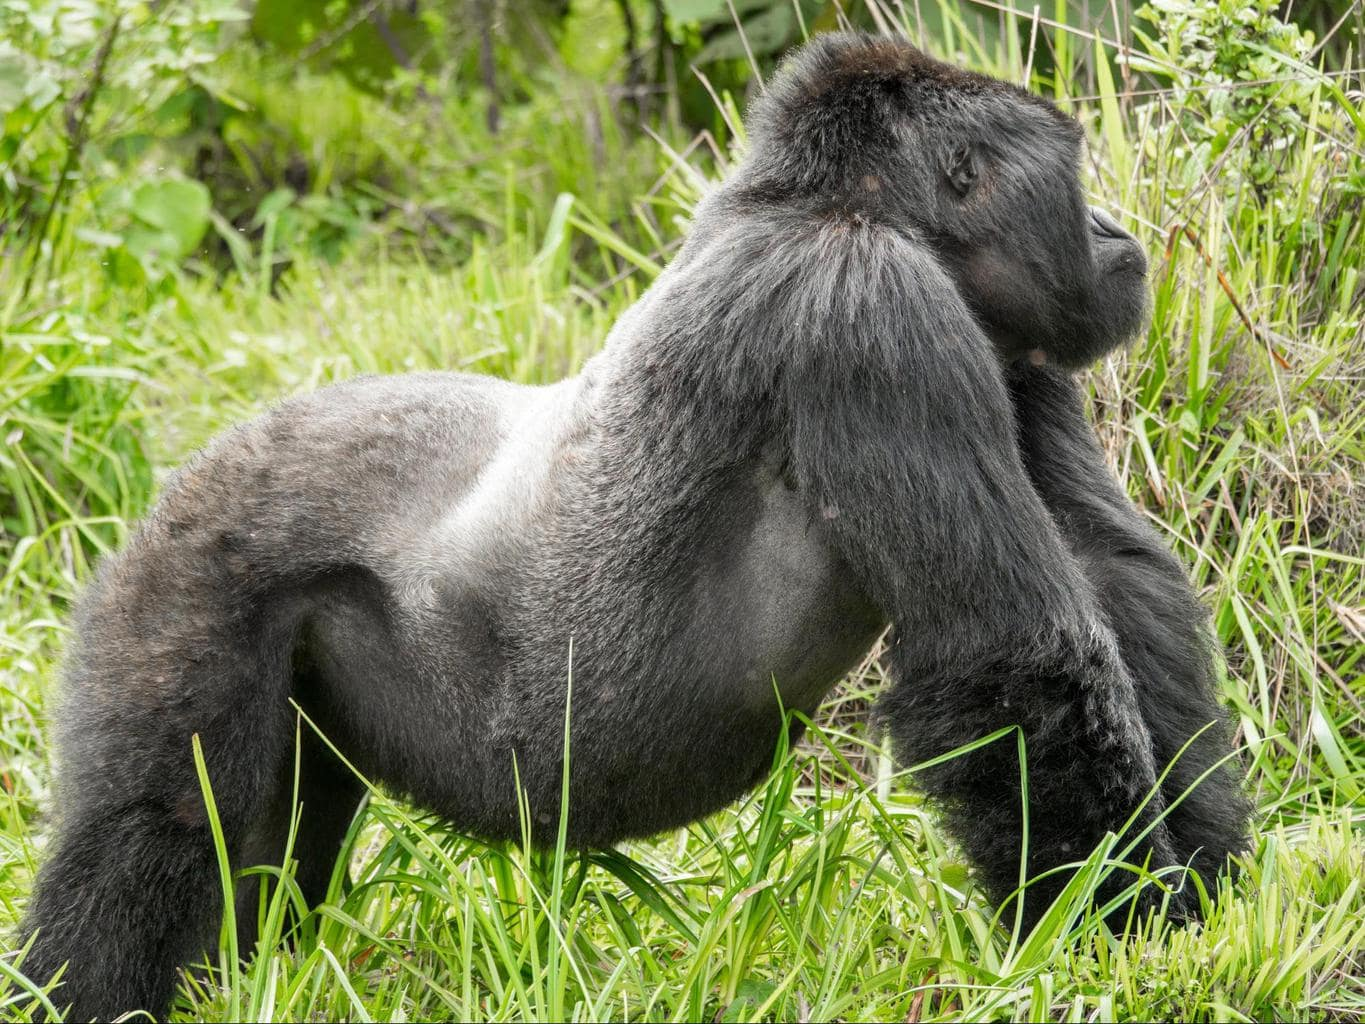 Silverback gorillas get the name from the silver hair on their back